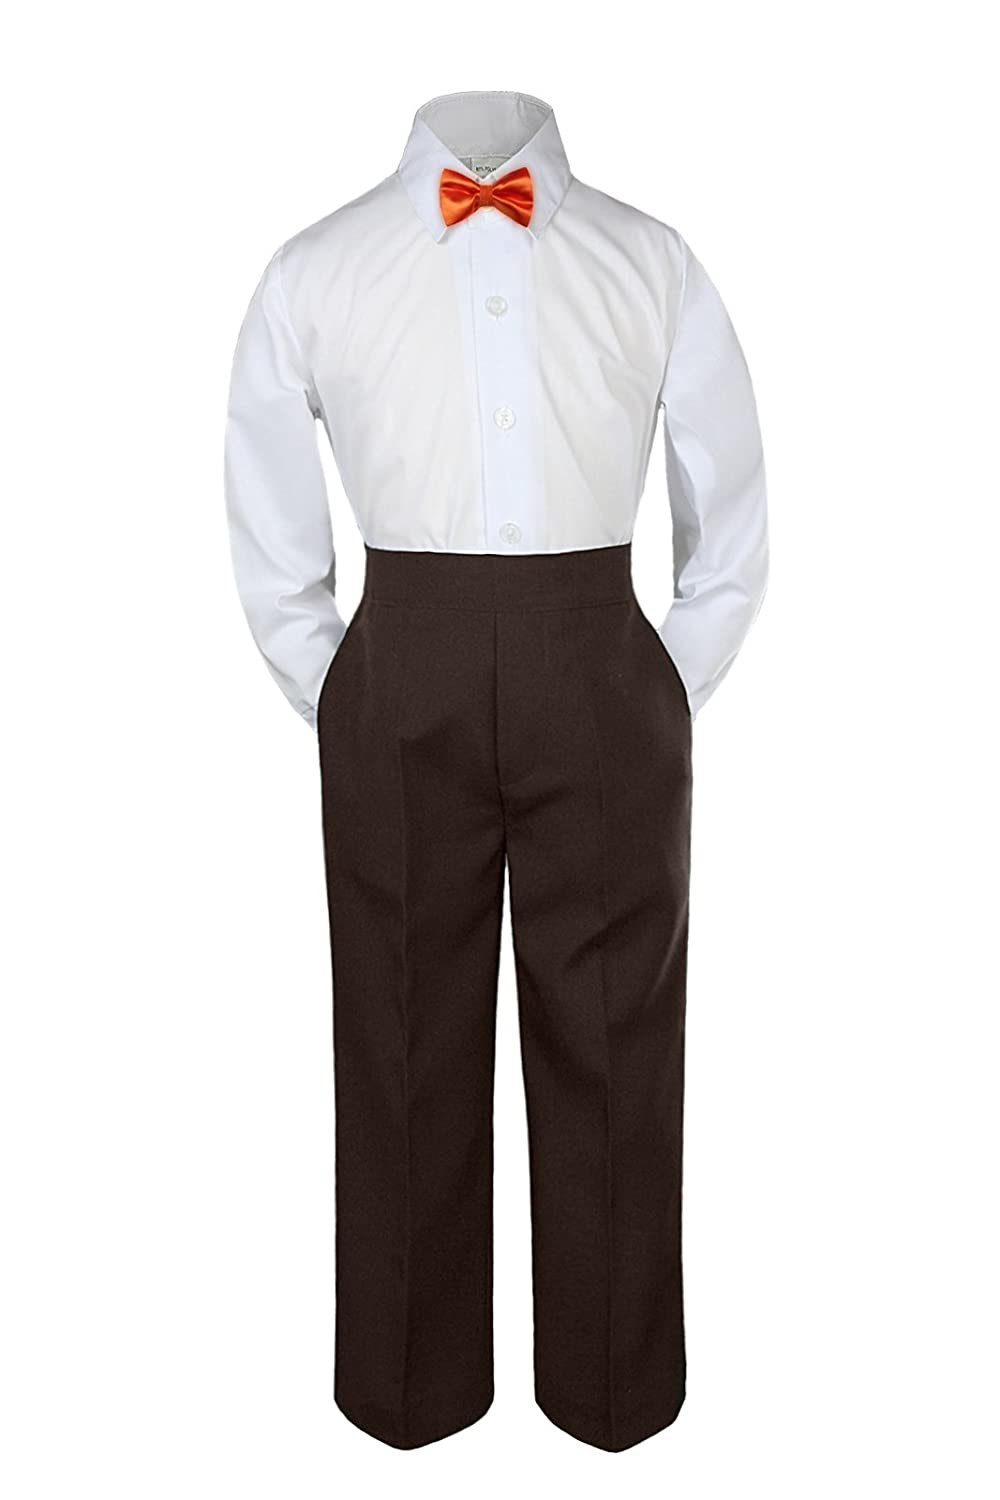 Leadertux 3pc Formal Baby Toddler Boys Orange Bow Tie Brown Pants Set Outfit S-7 (4T)